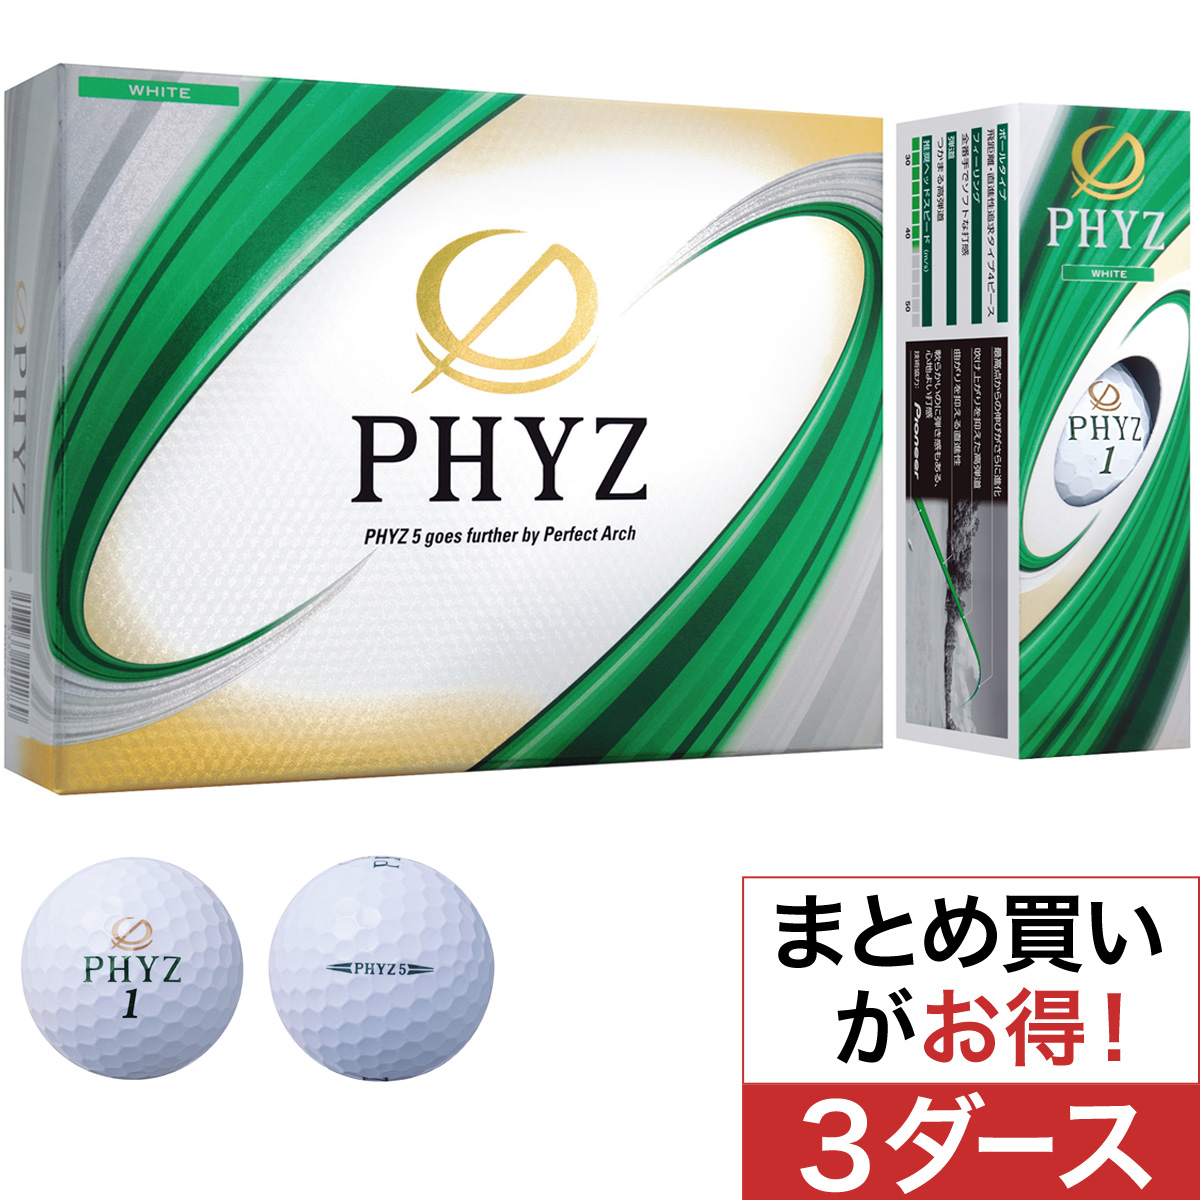 PHYZ ボール 3ダースセット